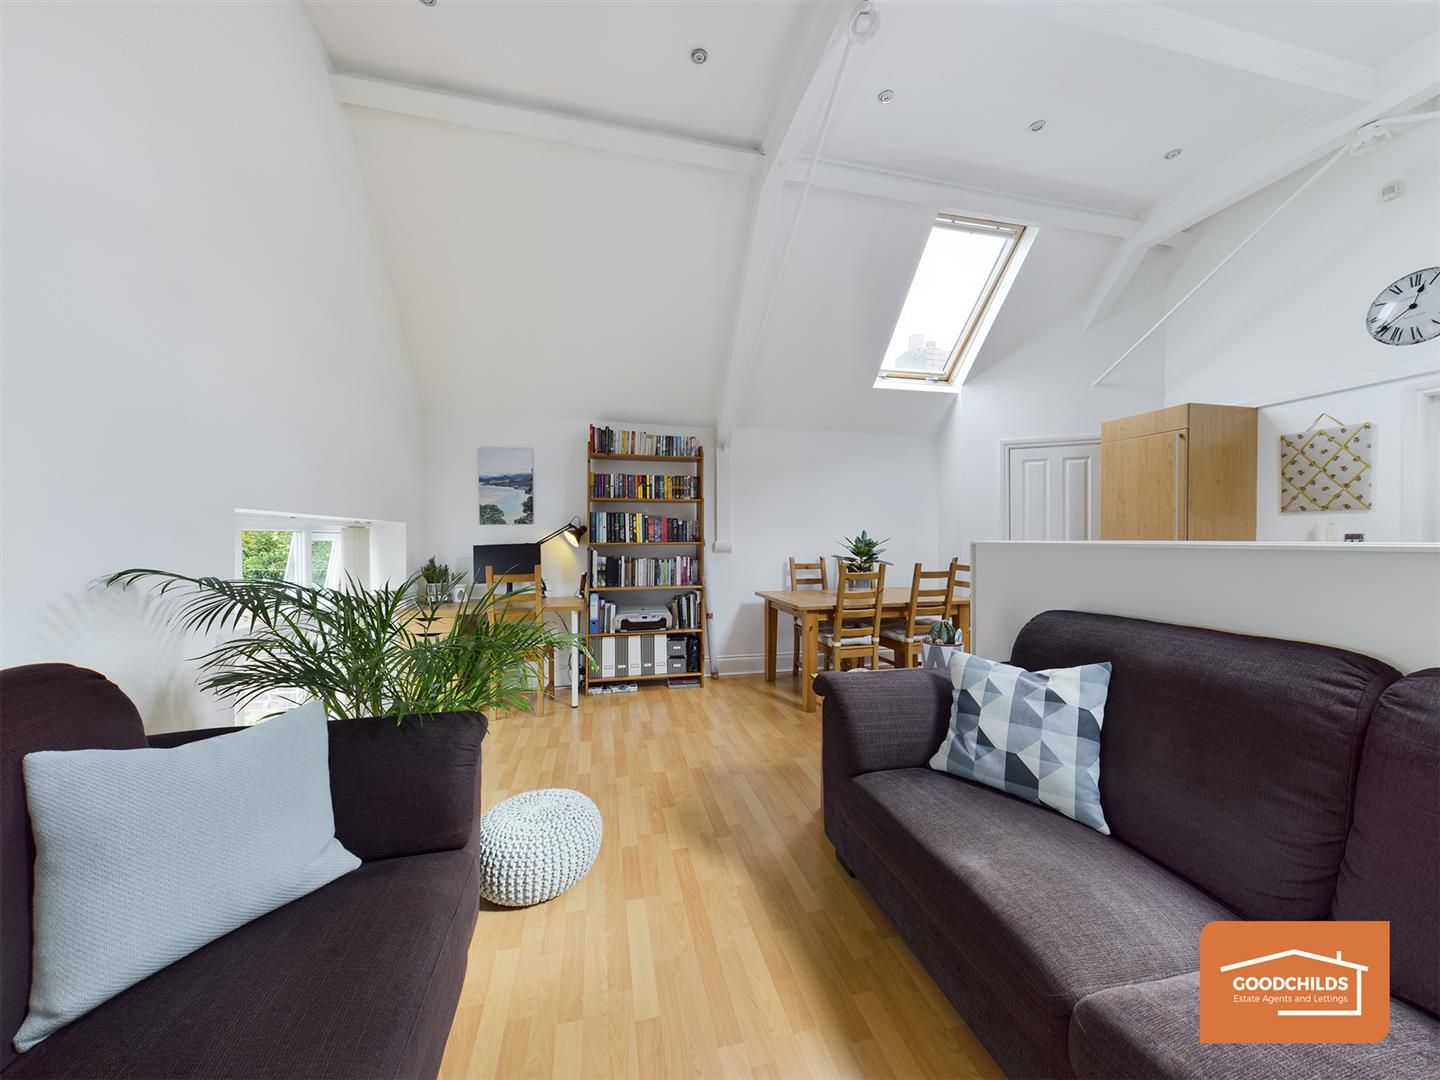 Property photo 1 of 10. Open Plan Living Room